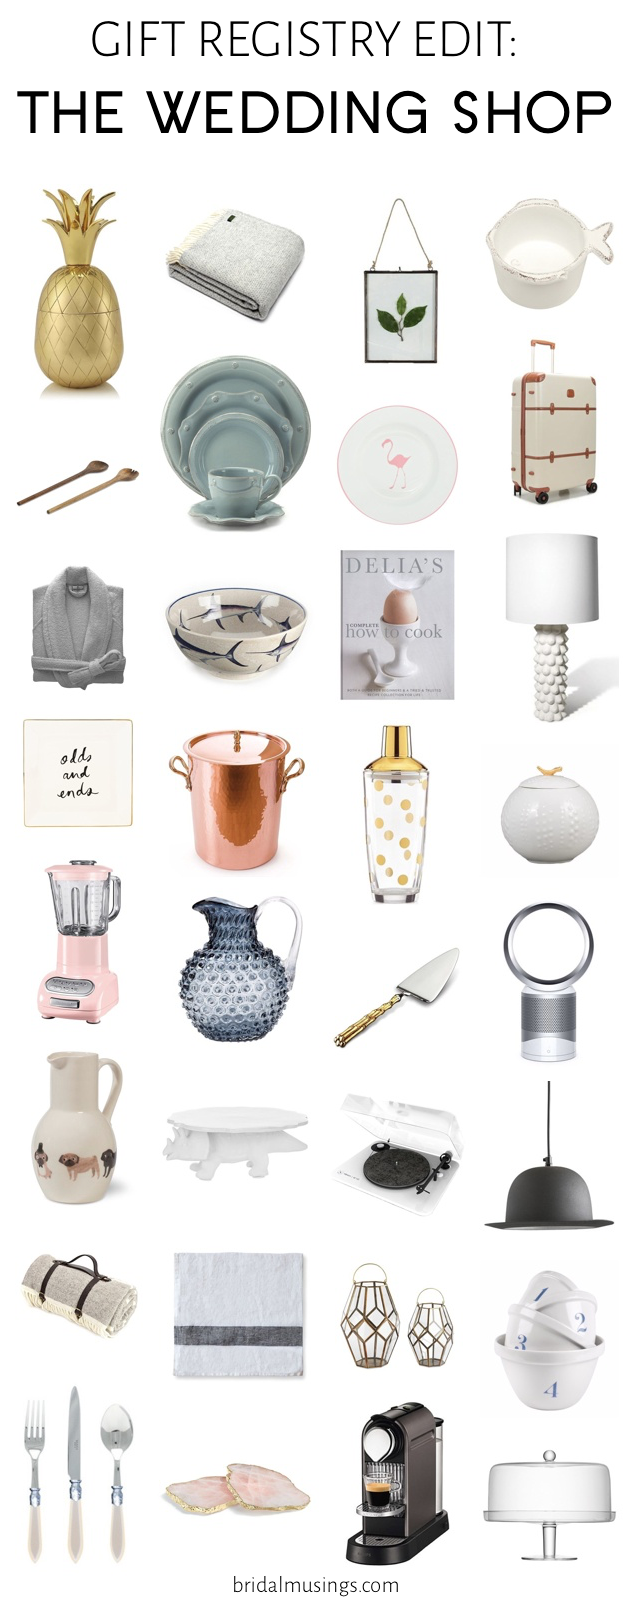 Gift Registry Edit The Wedding Shop Bridal Musings Wedding Blog